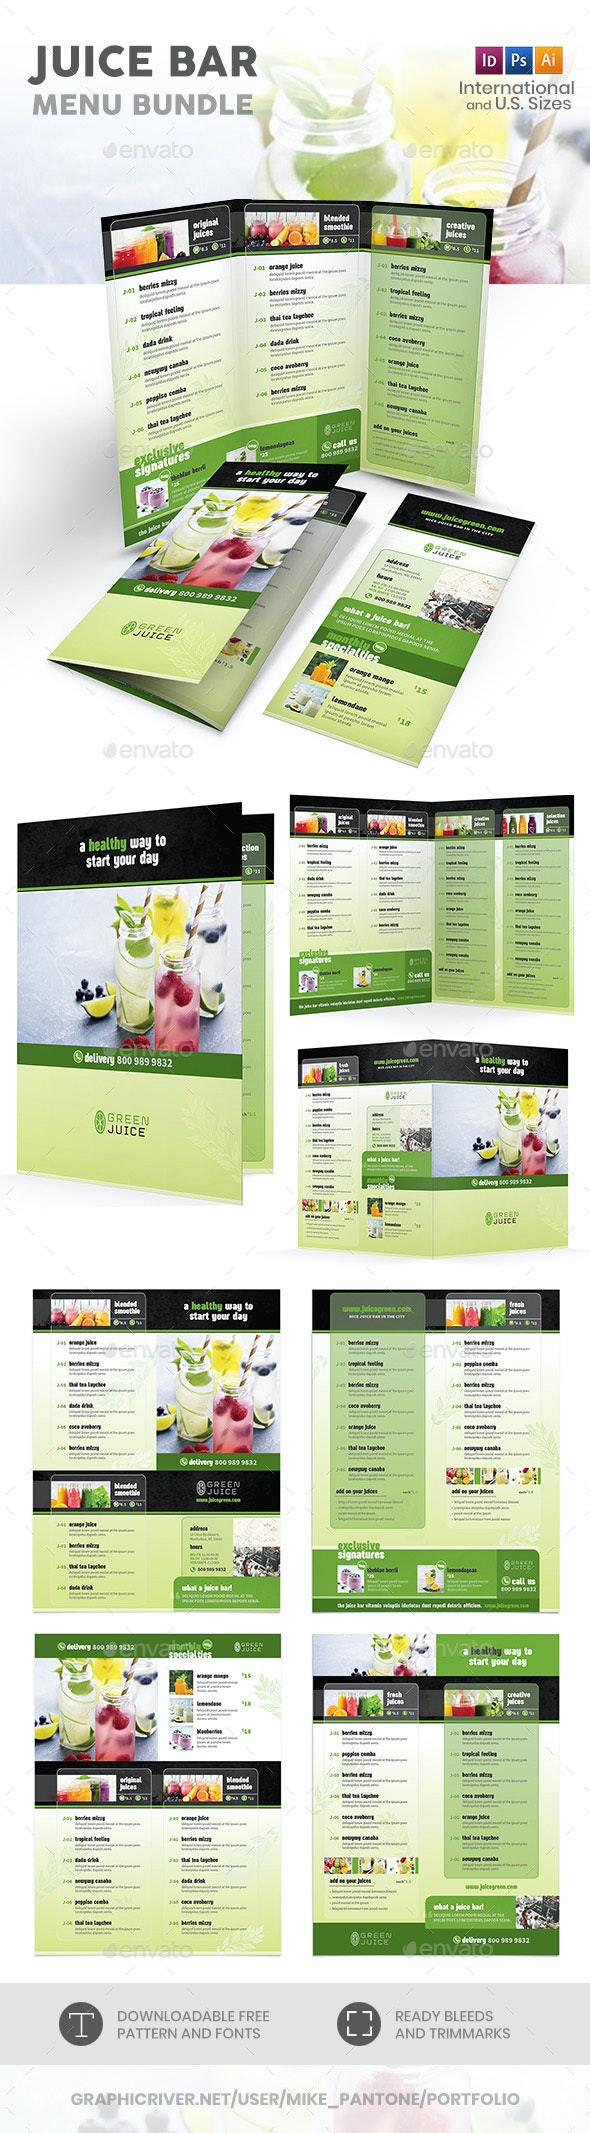 Juice Bar Menu Print Bundle - Food Menus Print Templates